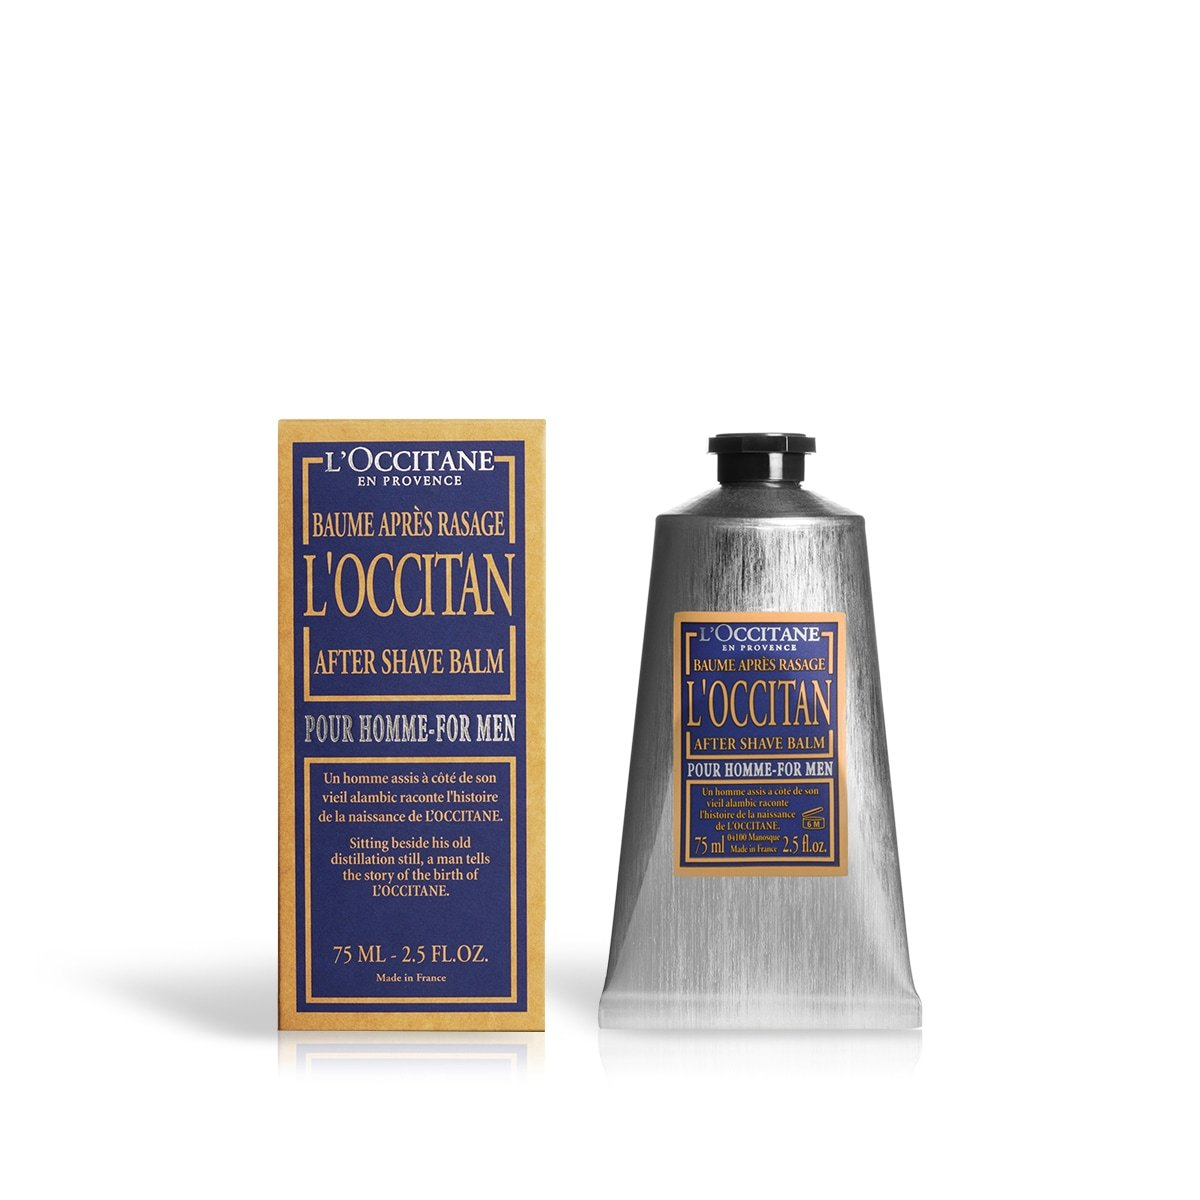 L'Occitane Moisturizing L'Occitan After Shave Balm for Men with Shea Butter, 2.5 fl. oz. by L'Occitane (Image #2)